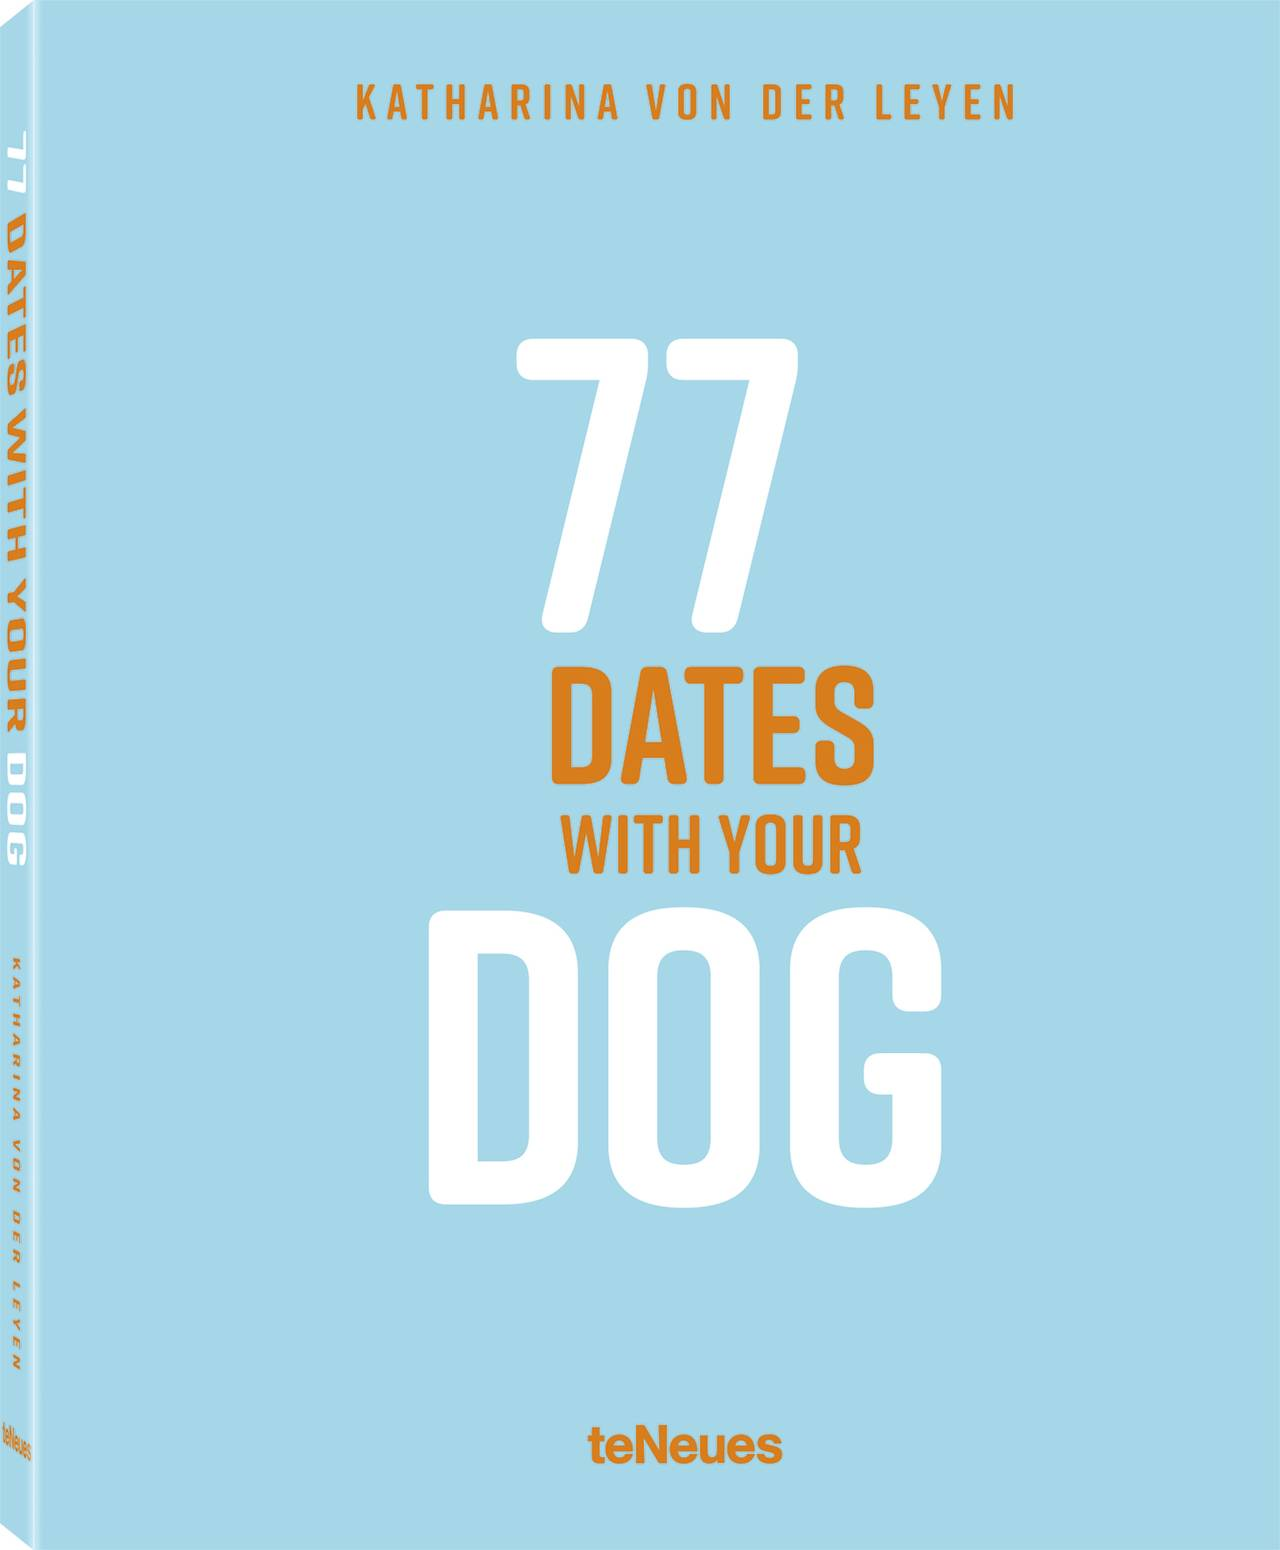 © 77 Dates with Your Dog by Katharina von der Leyen, published by teNeues, www.teneues.com